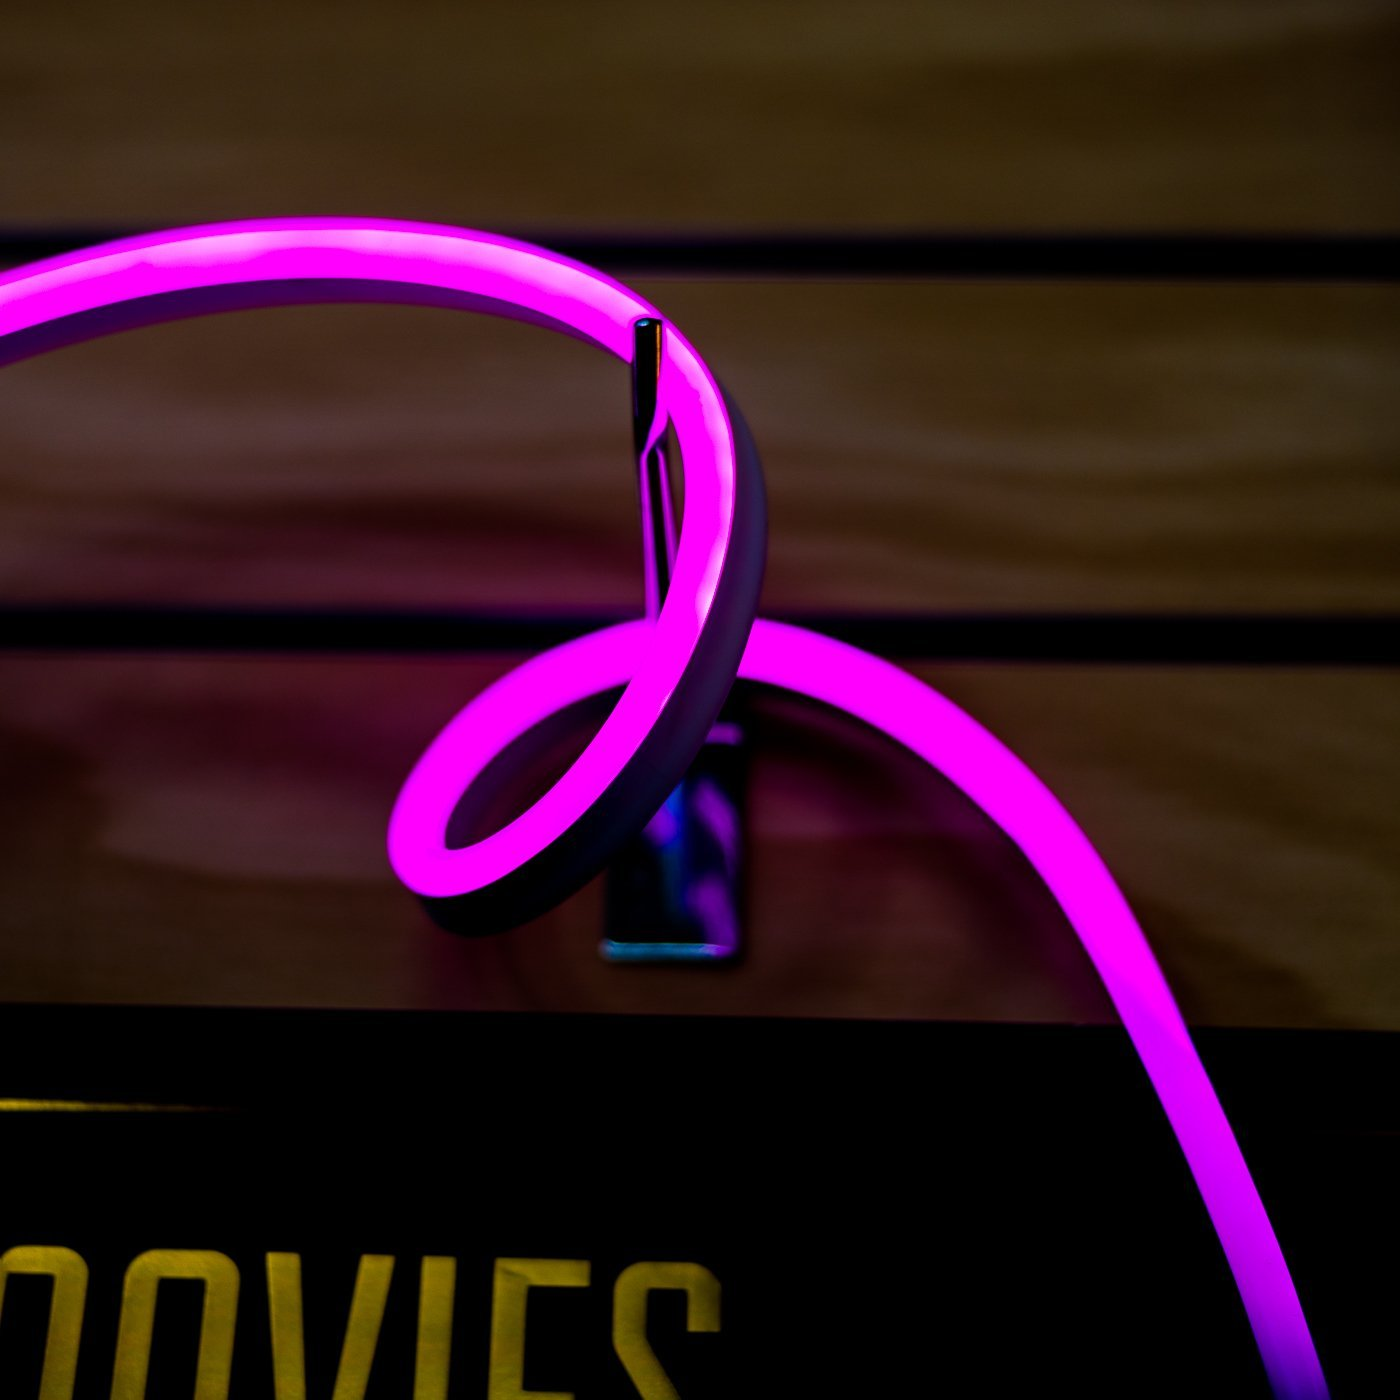 Flexible neon led rope lights 2m long yellow octopus china flexible coloured neon led rope lights aloadofball Image collections